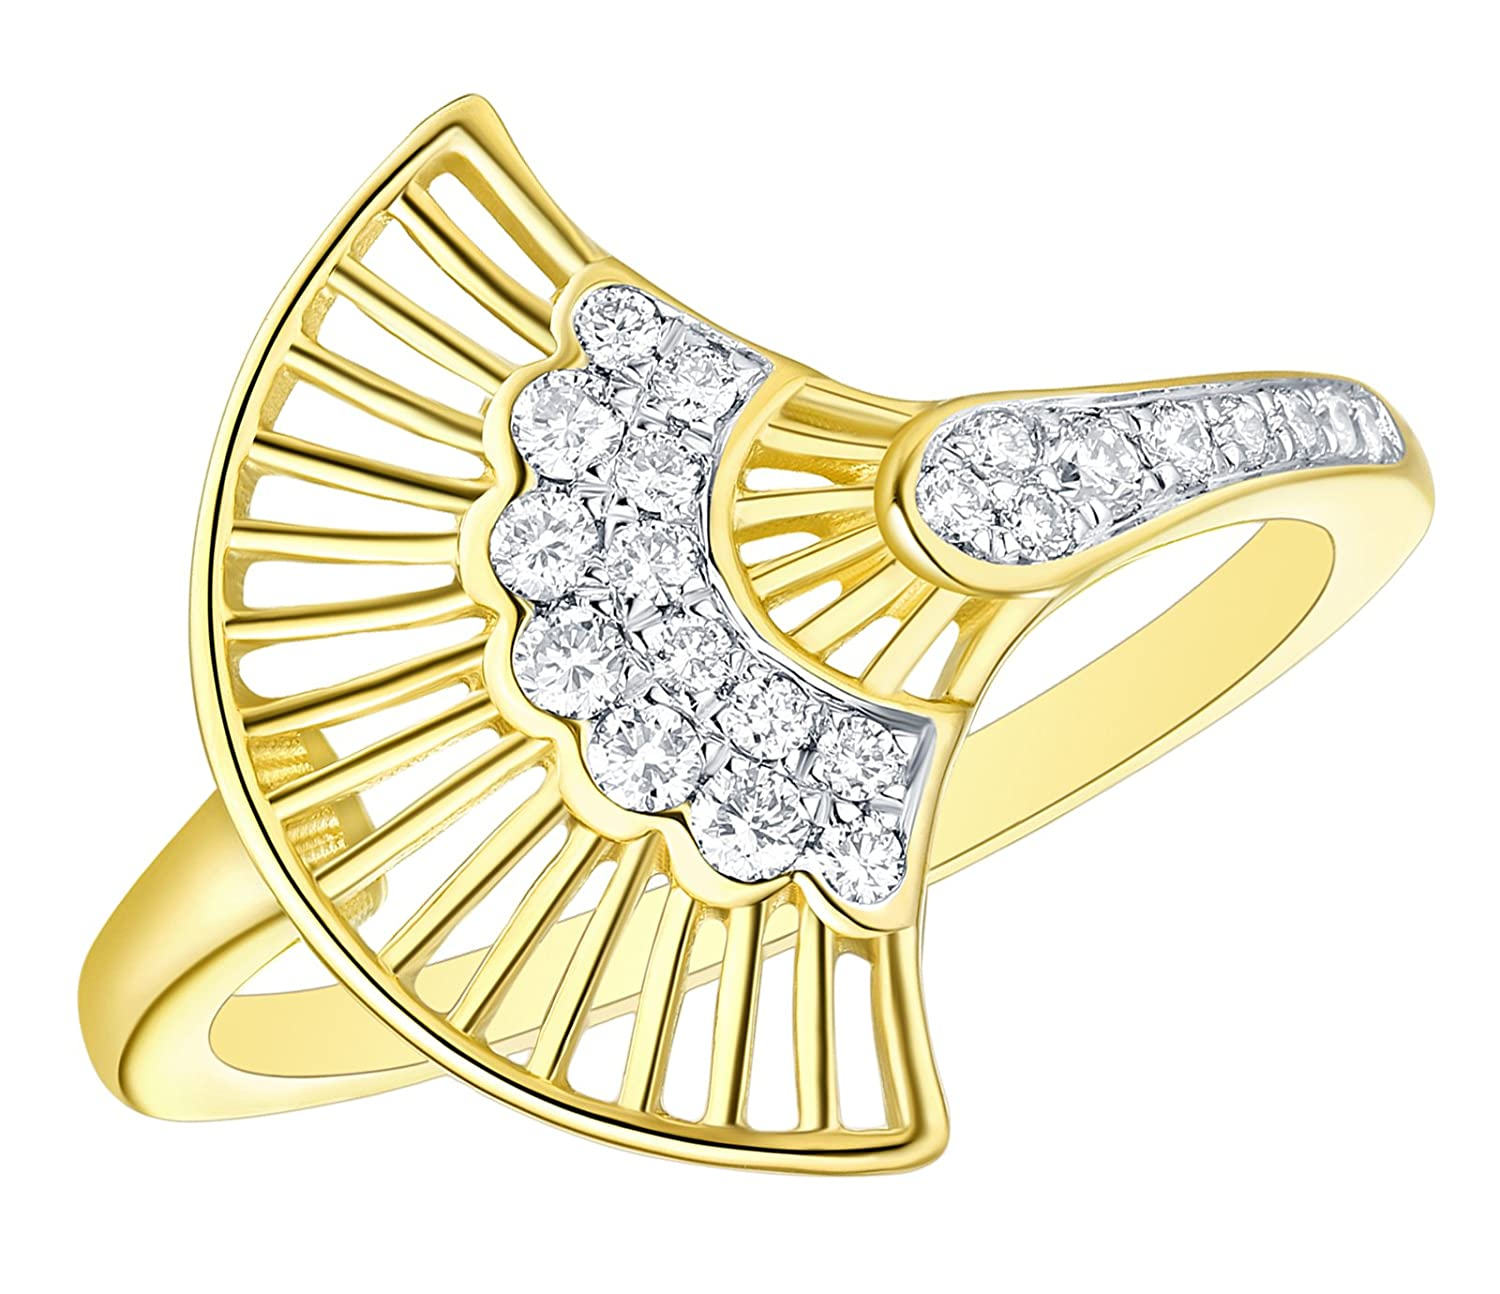 Prism Jewel 0.21 Carat Round G-H//I1 Natural Diamond Stylist Ring 10k Gold